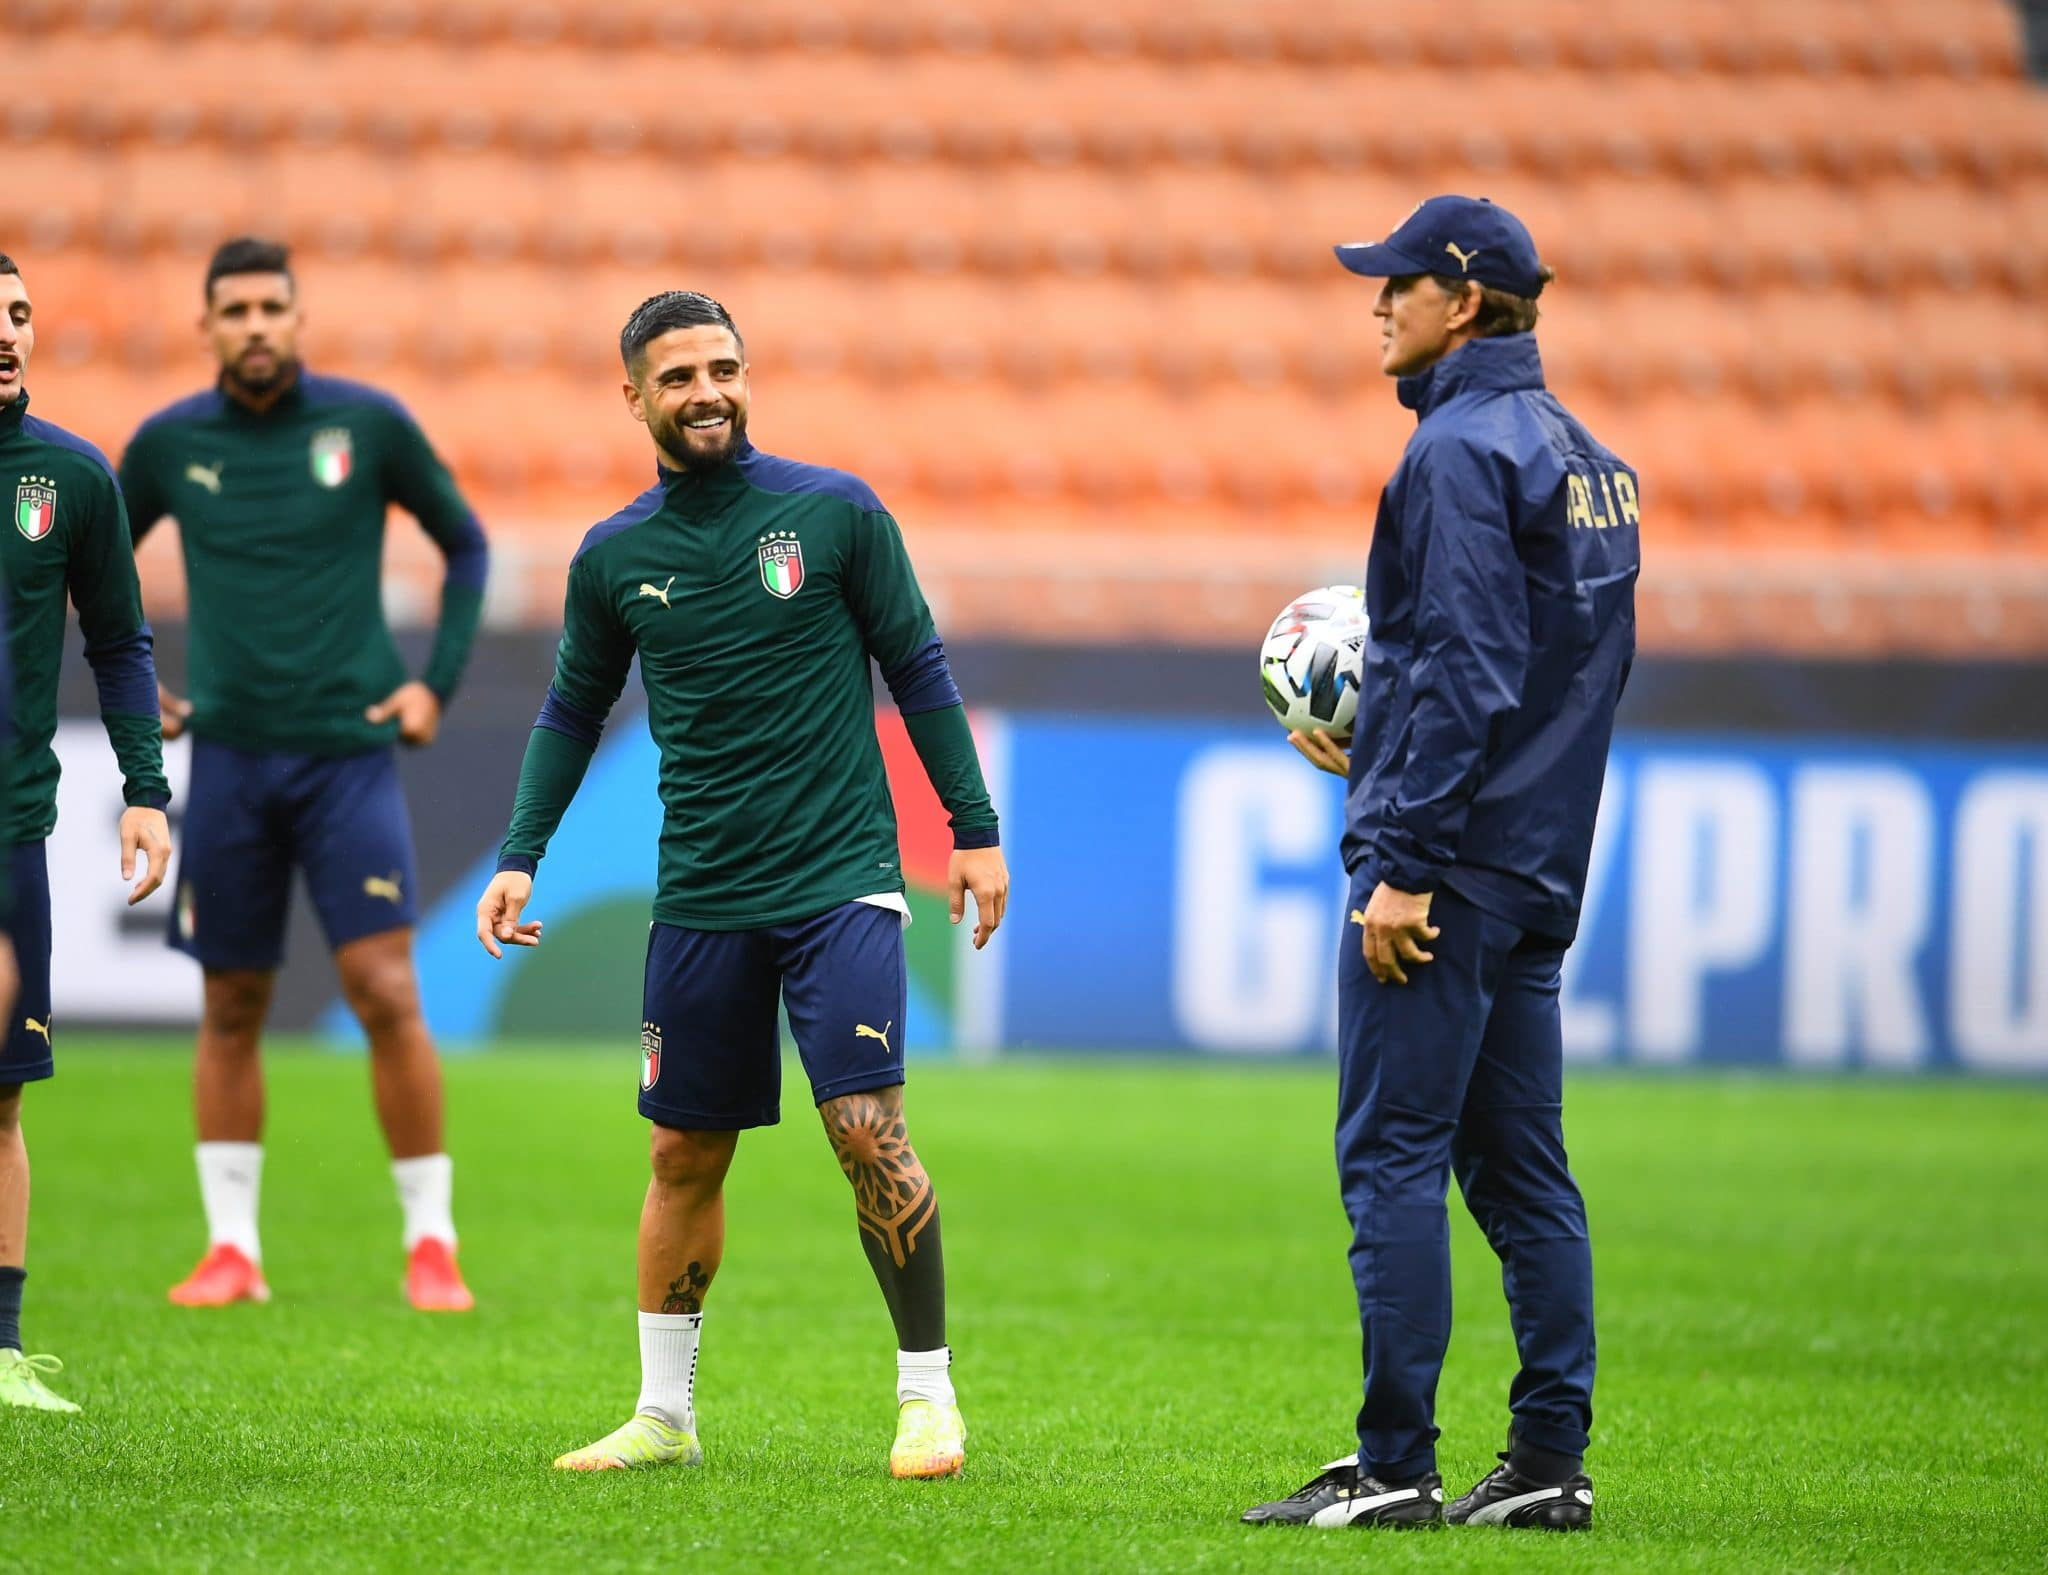 MILAN, ITALY - OCTOBER 05: Head coach Italy Roberto Mancini and Lorenzo Insigne of Italy look on during training session on October 05, 2021 in Milan, Italy. (Photo by Claudio Villa/Getty Images)